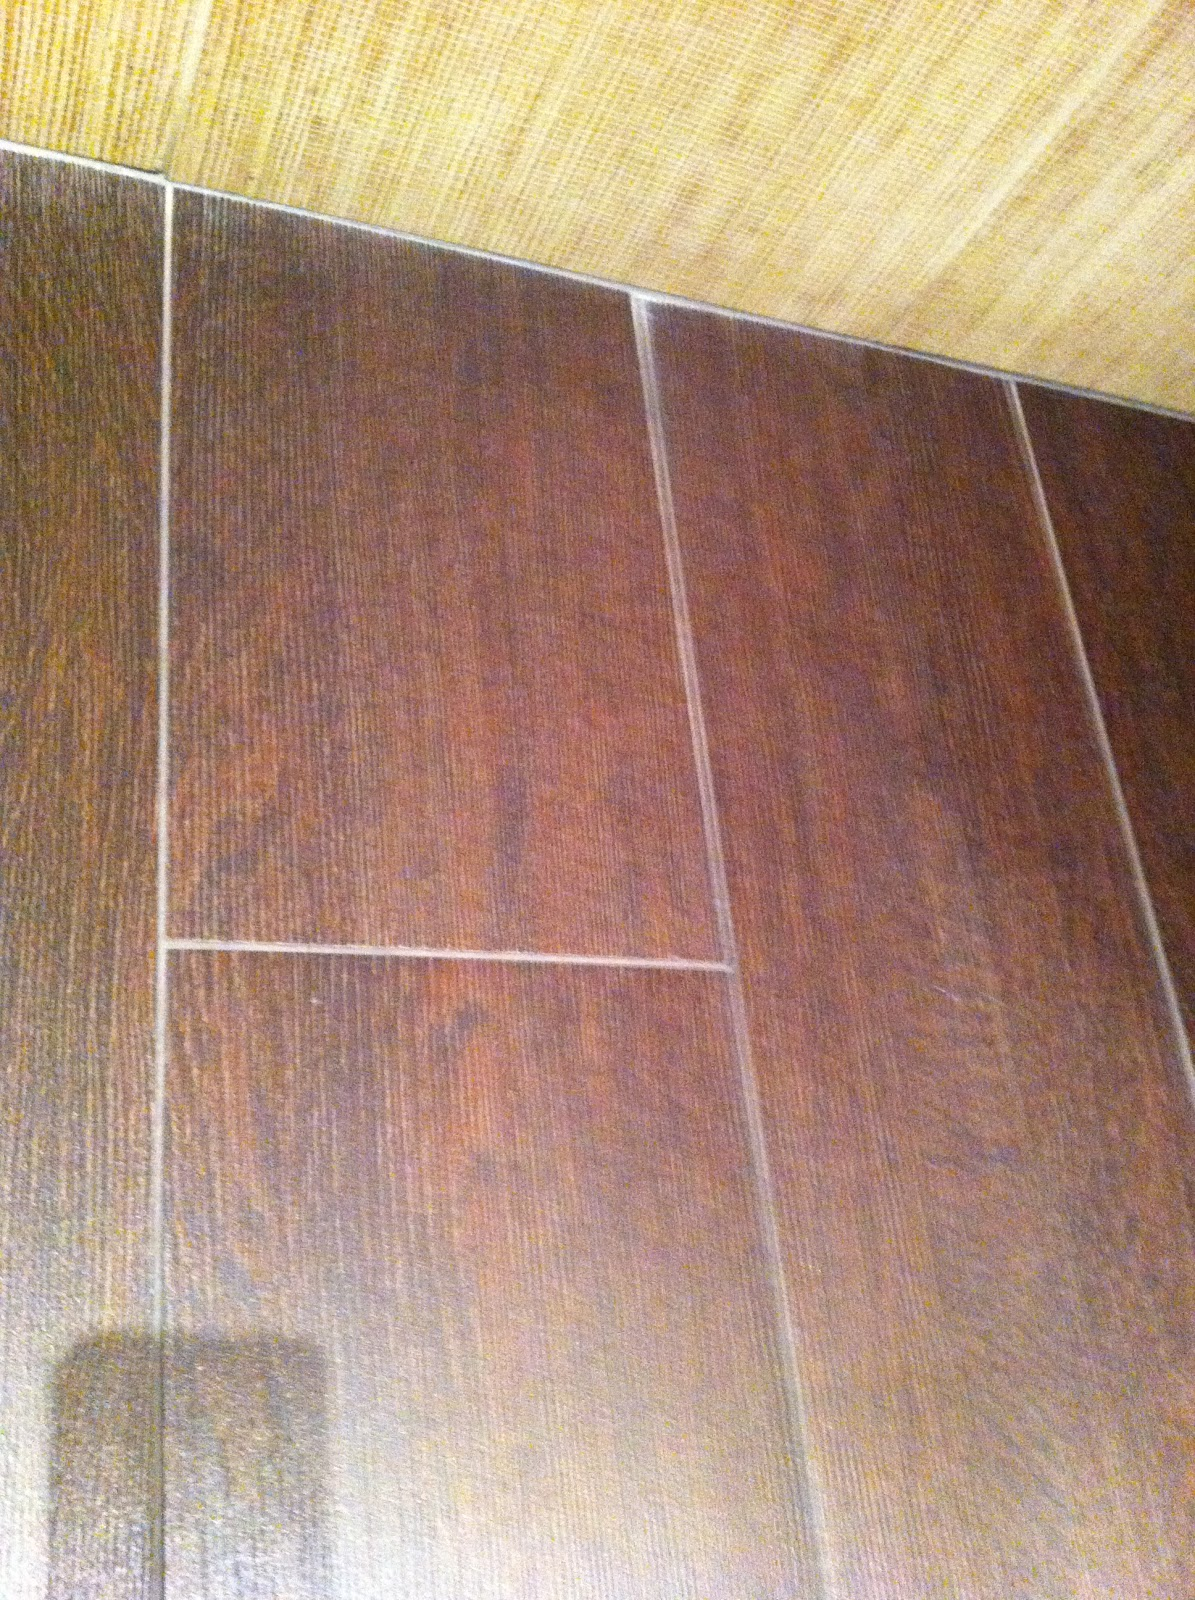 Fake wood flooring in bathroom 2017 2018 best cars reviews for Fake tile floor